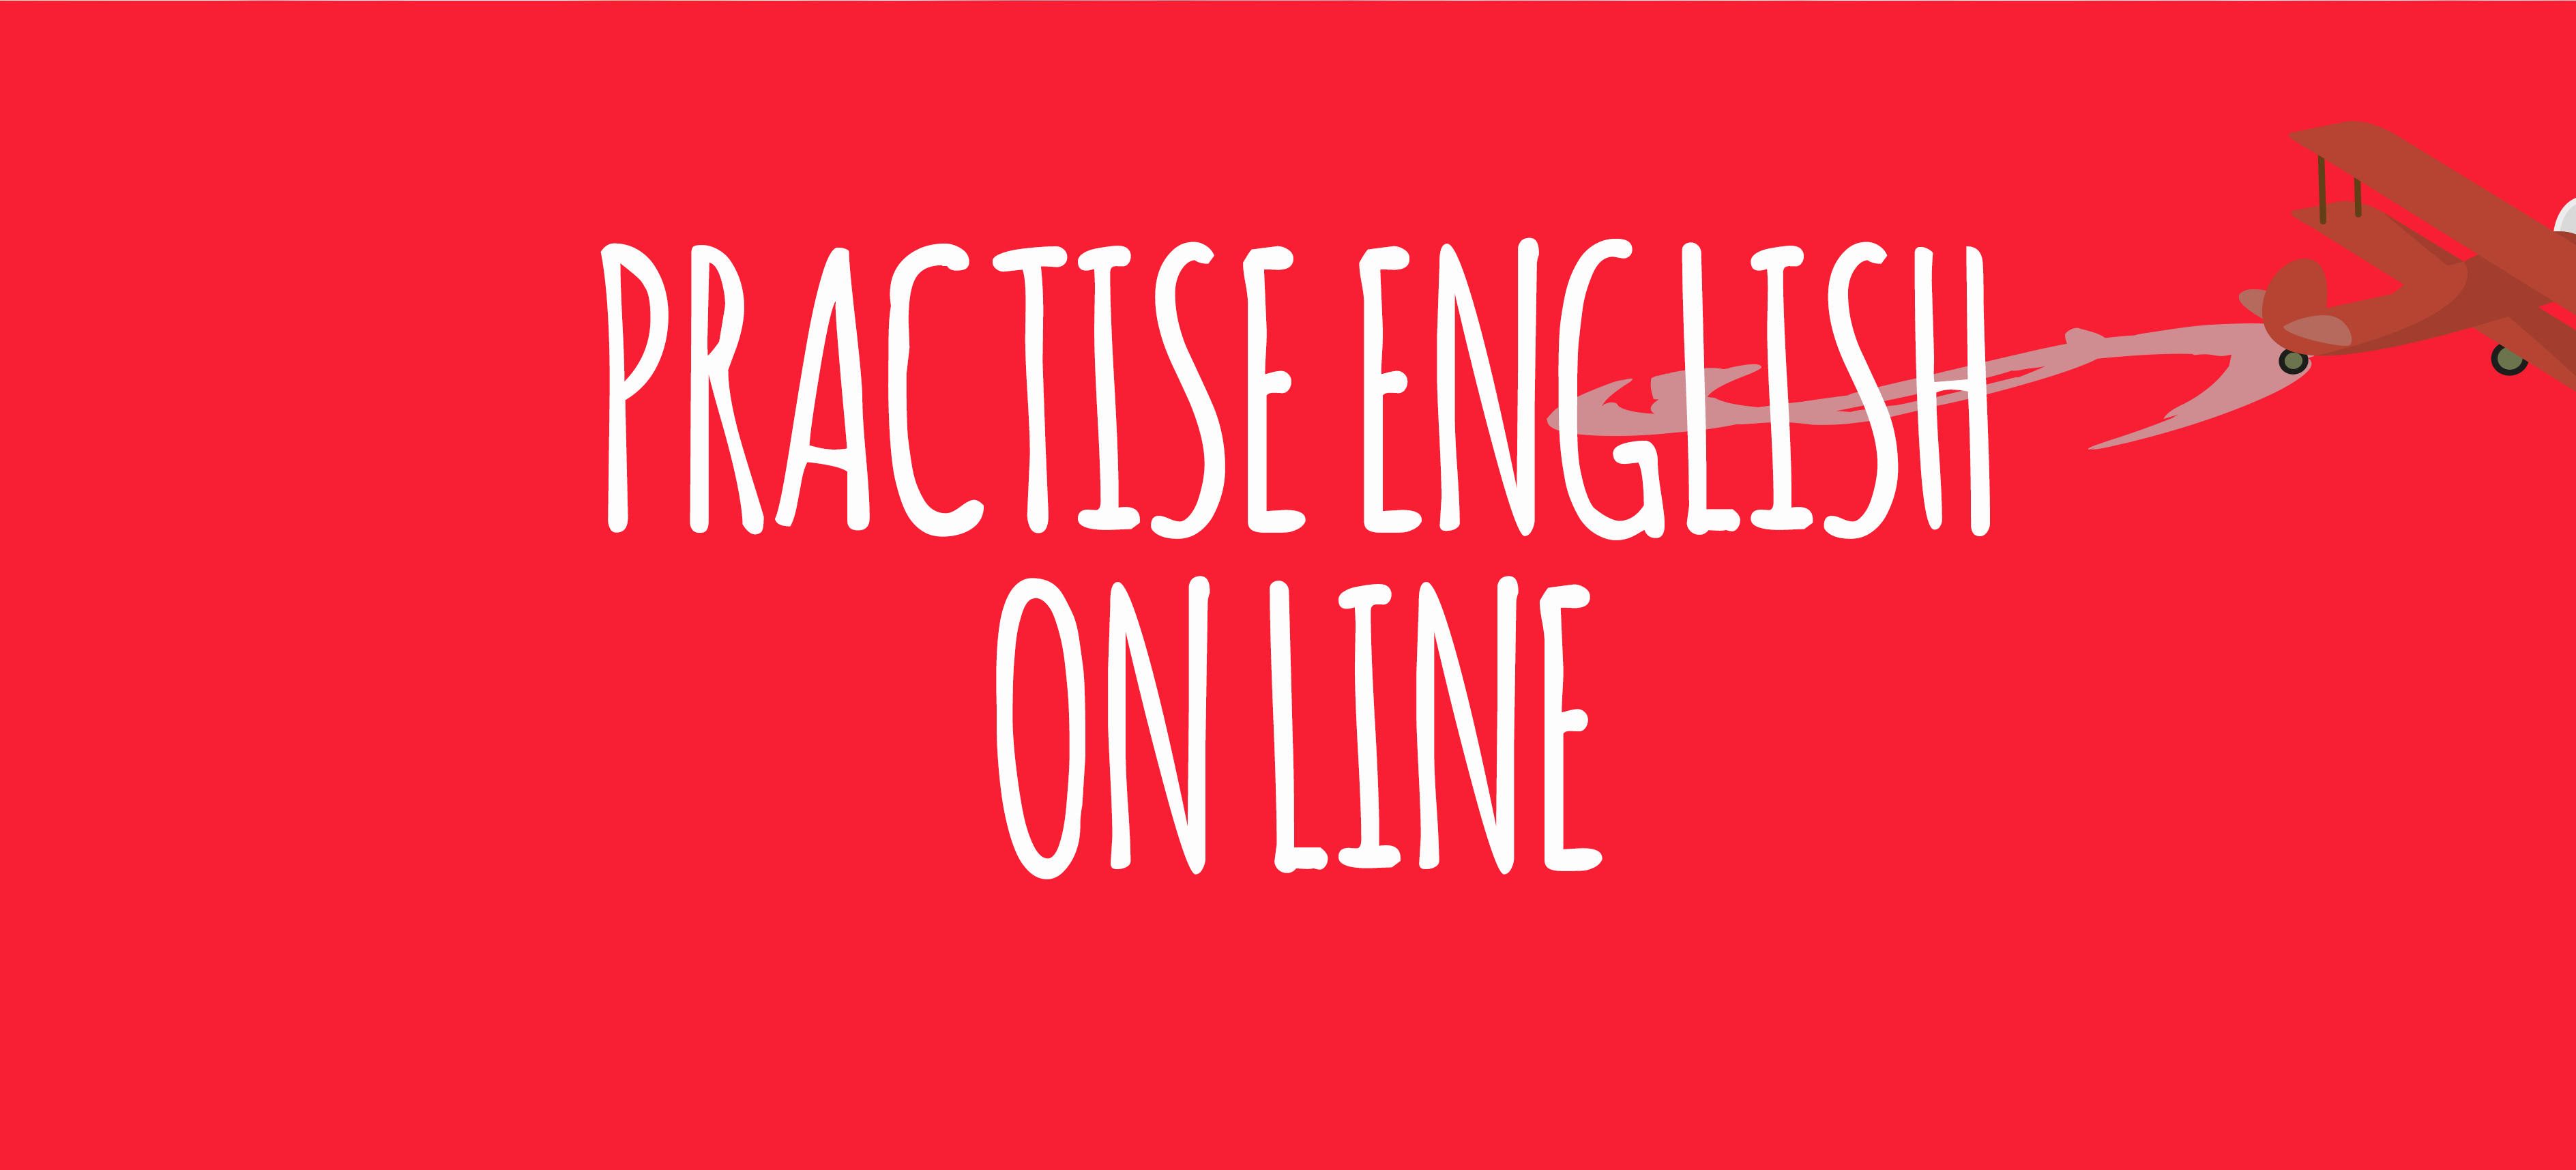 PRACTISE-ENGLISH-ON--LINE